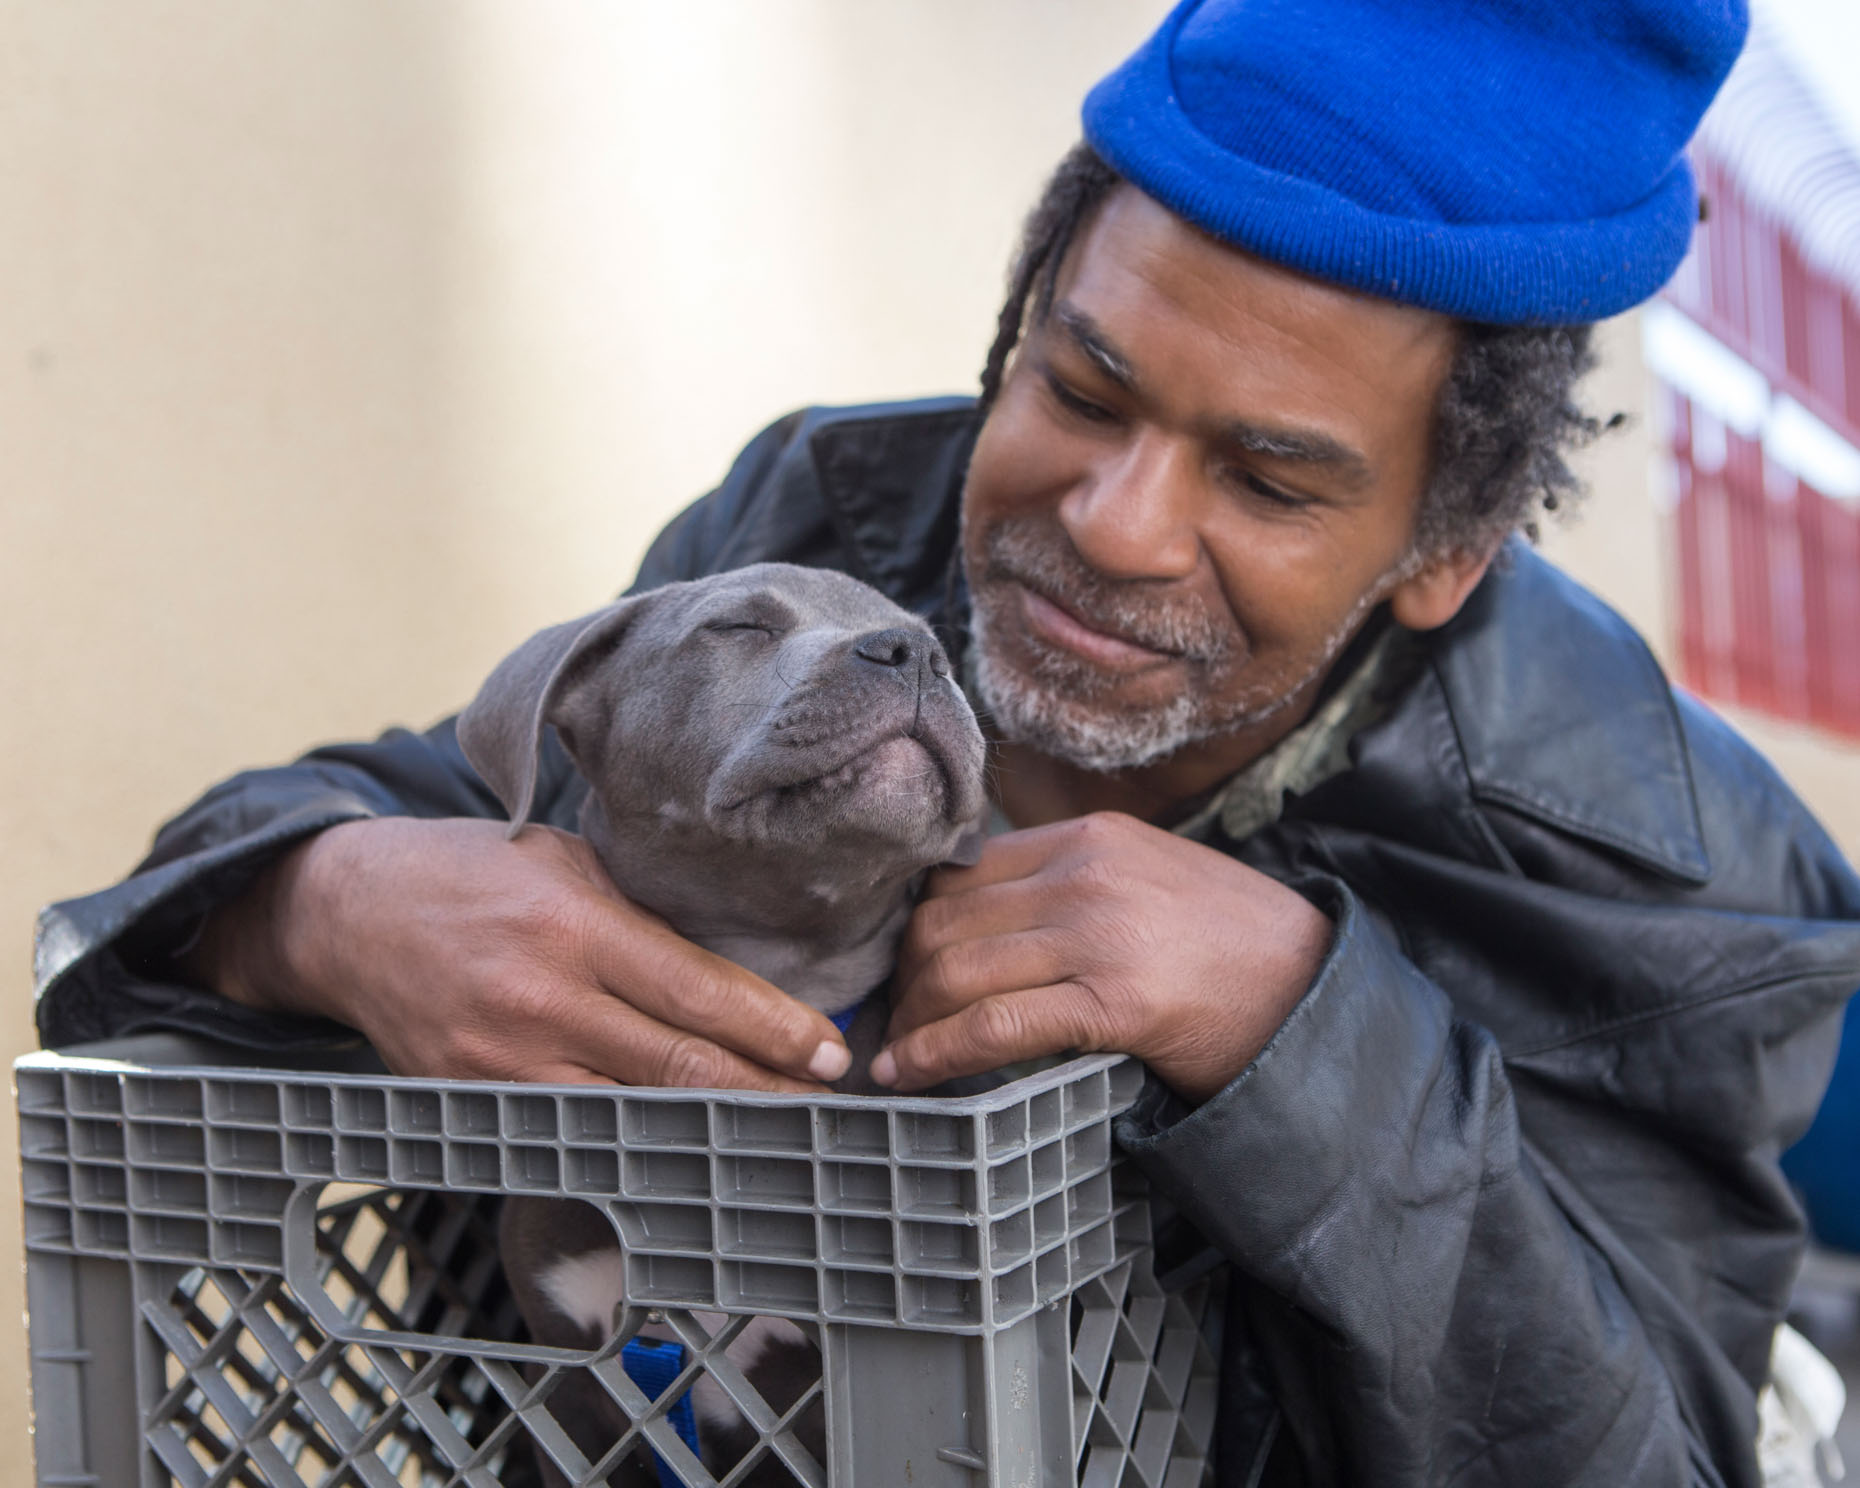 Editorial Photography | Man Holding Puppy in Milk Crate by Mark Rogers